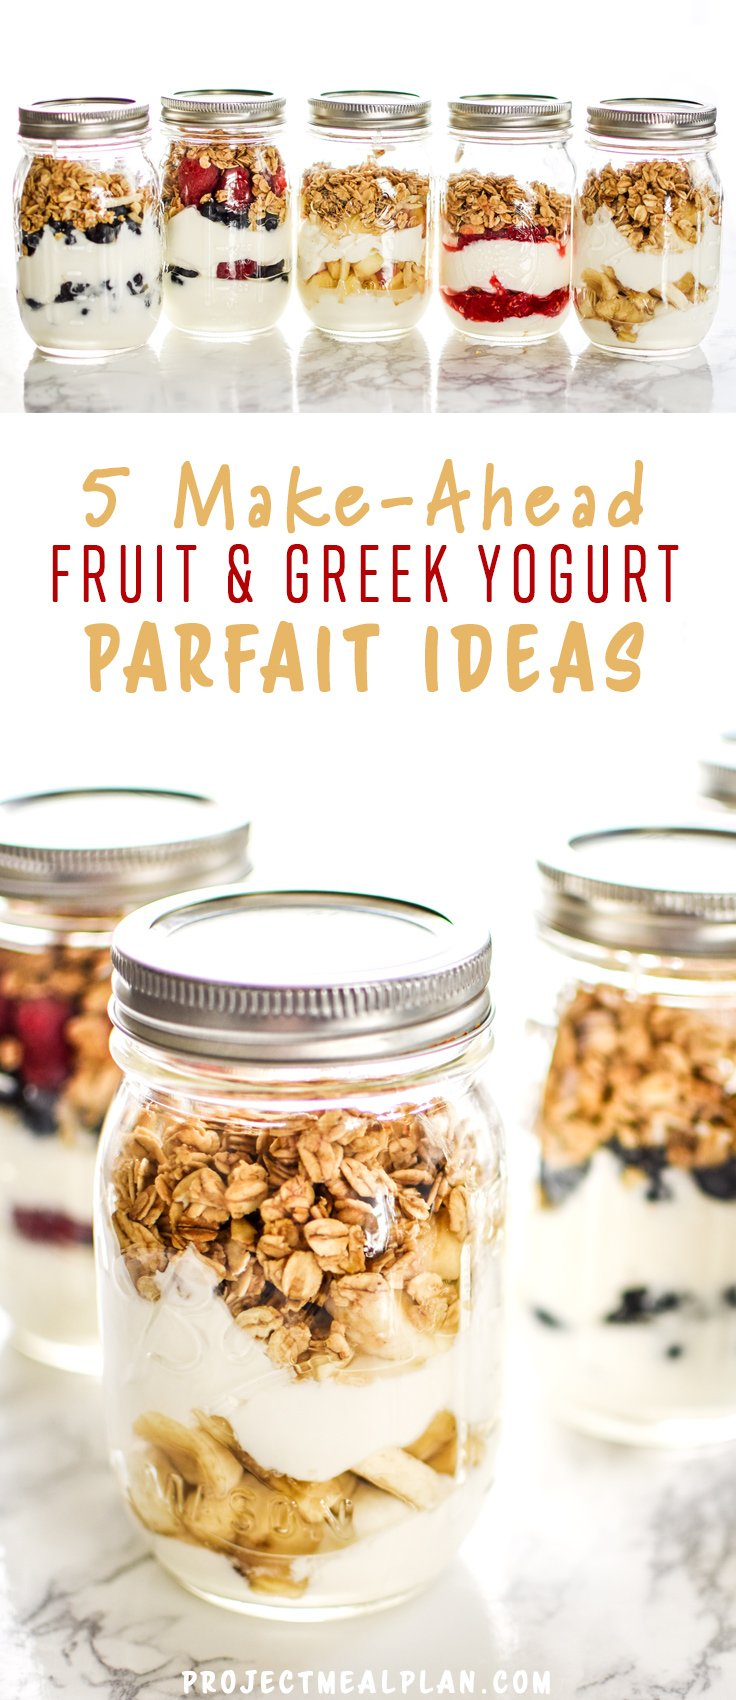 5 Make-Ahead Fruit & Greek Yogurt Parfait Ideas to Try for Breakfast - Greek yogurt with just a hint of sweetness, layered with fruits and topped with granola, 5 WAYS!! Prep ahead and grab it on your way out the door tomorrow! - ProjectMealPlan.com #mealprepping #mealprepsunday #masonjarparfaits #greekyogurtparfait